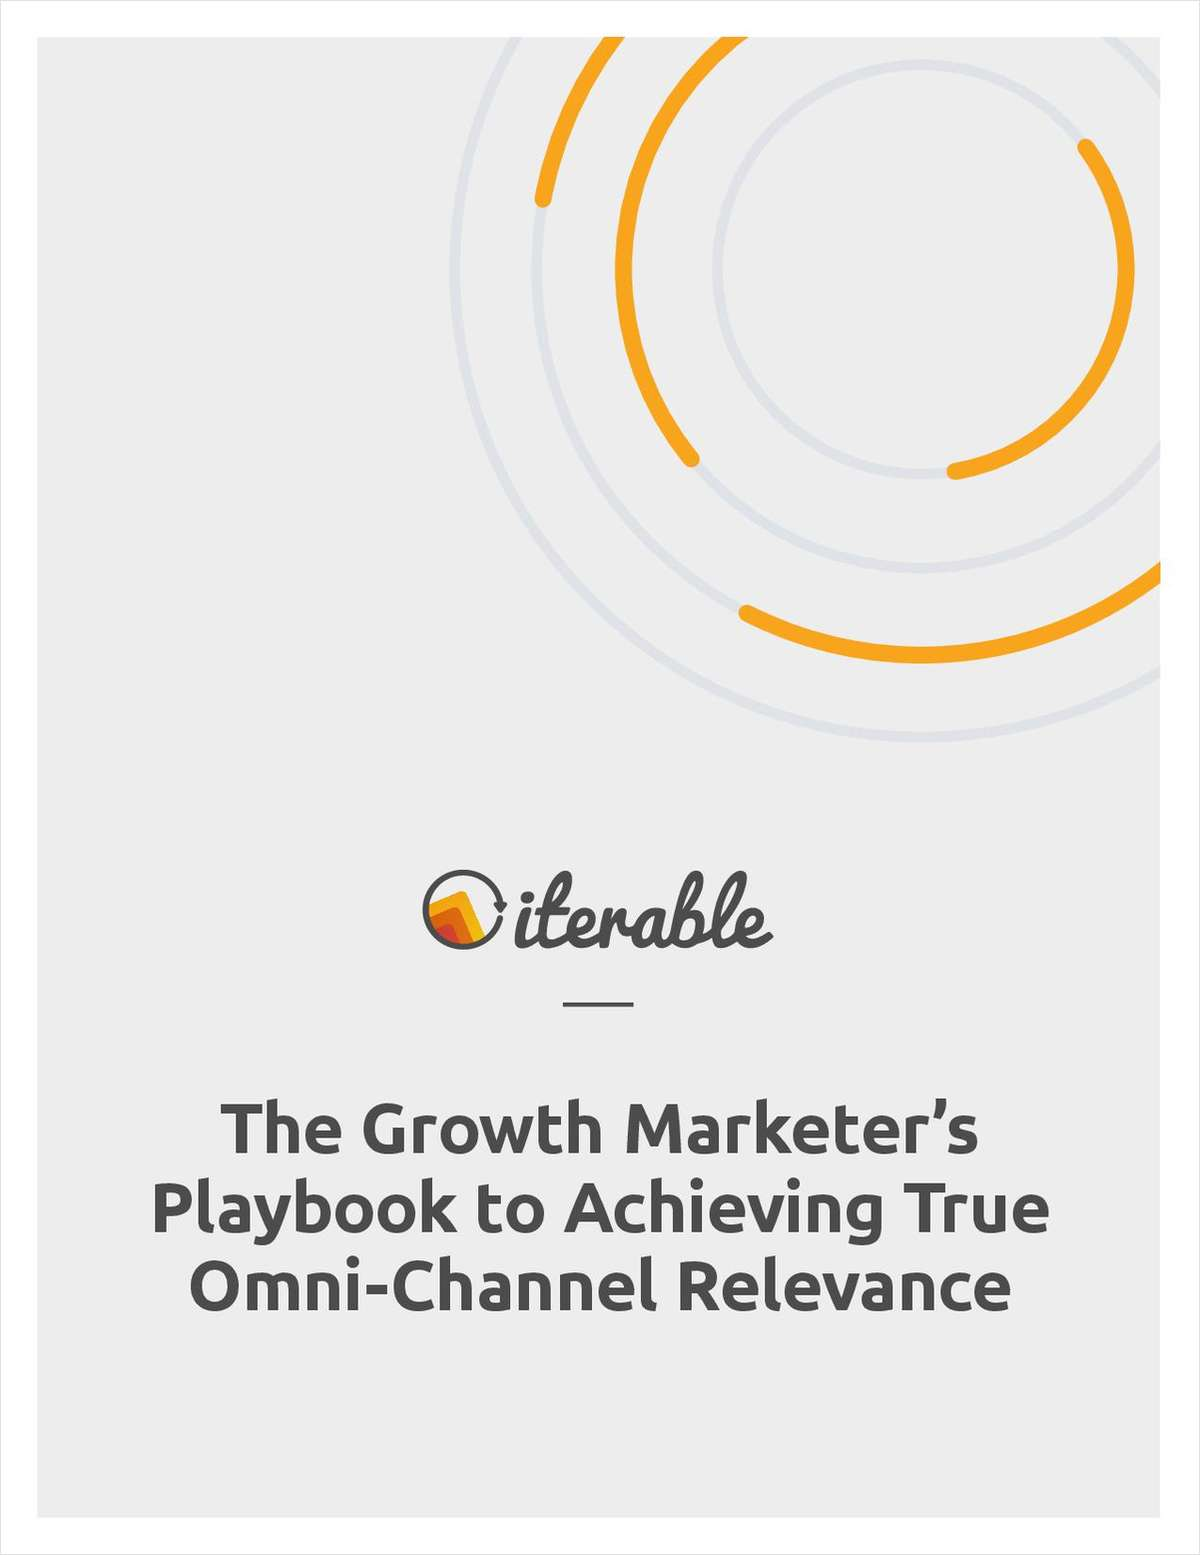 Achieving True Omni-Channel Relevance at Scale: The Growth Marketer's Playbook